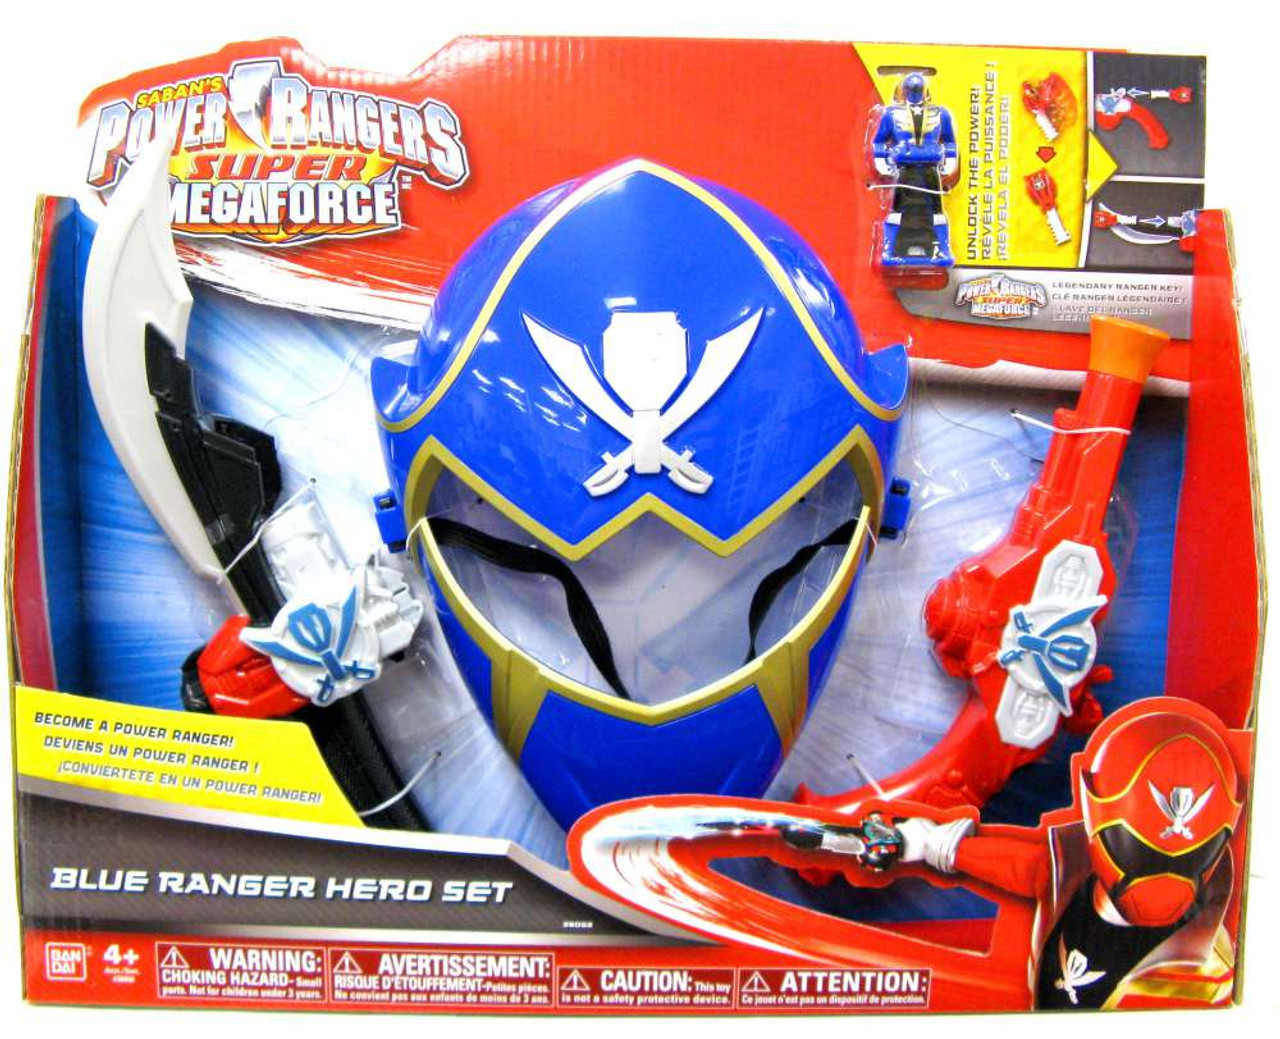 Power Rangers Super Megaforce Blue Ranger Hero Set Roleplay Toy